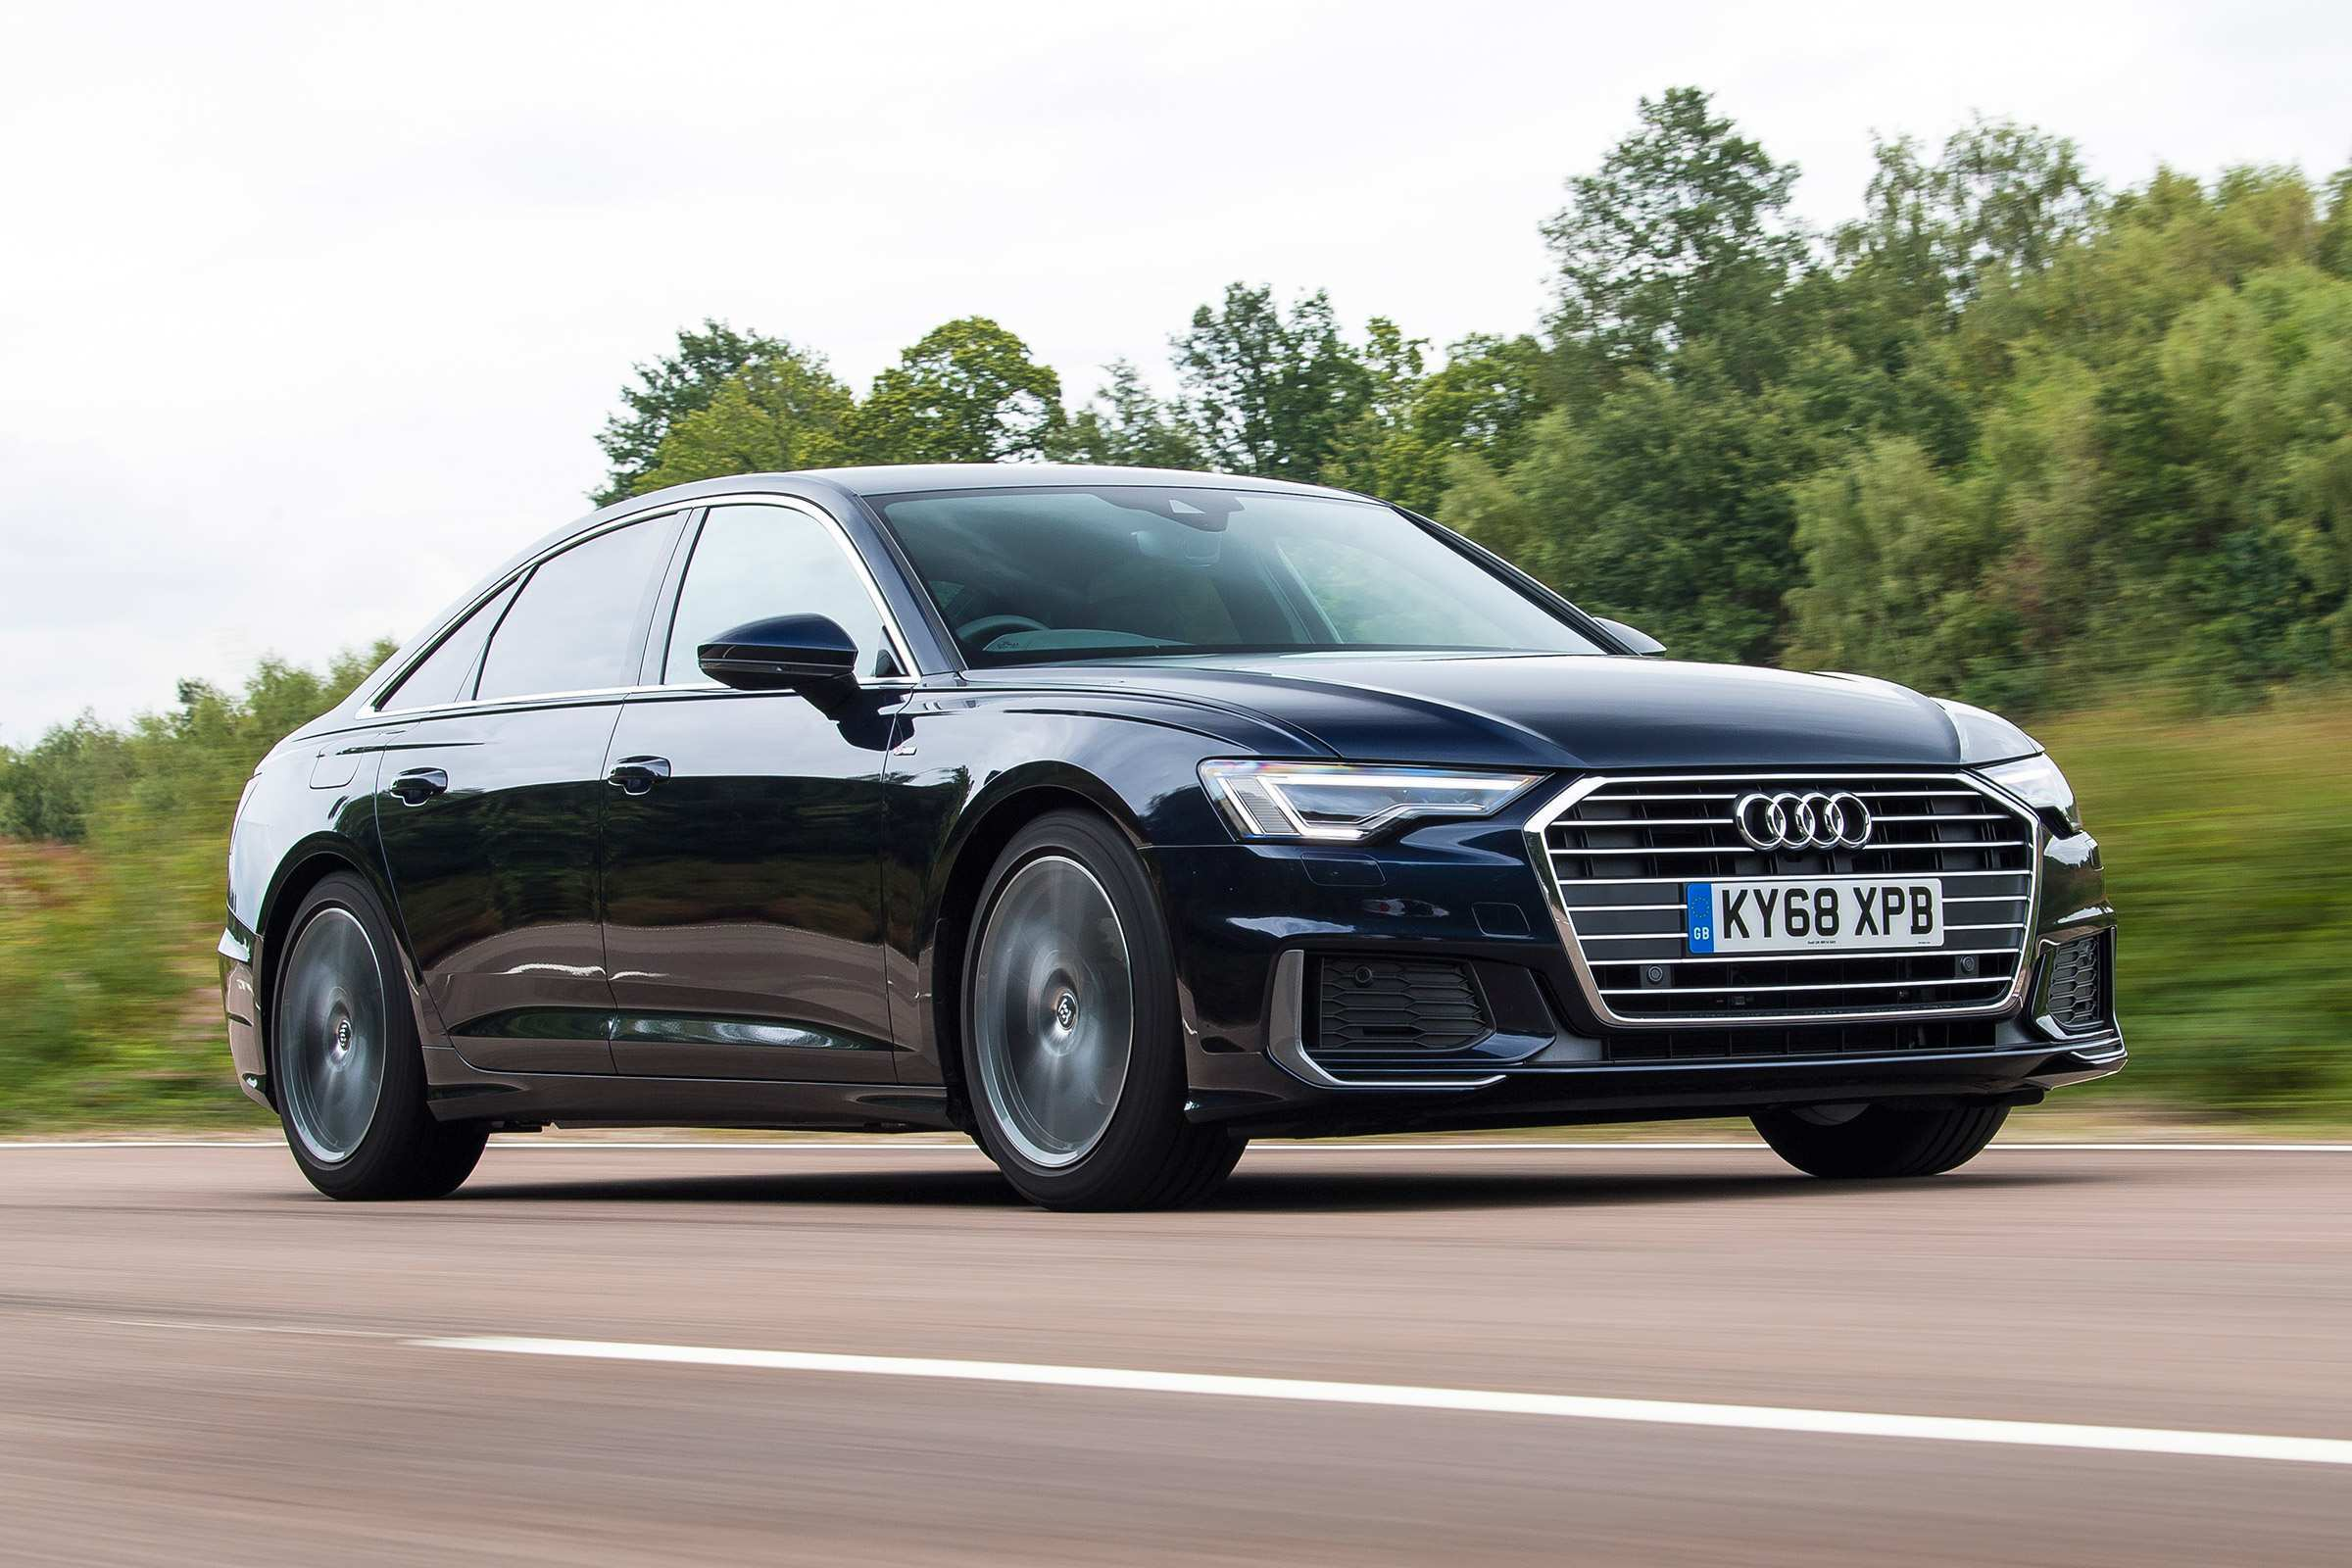 60 Great New Audi New A6 2019 Performance Speed Test with New Audi New A6 2019 Performance